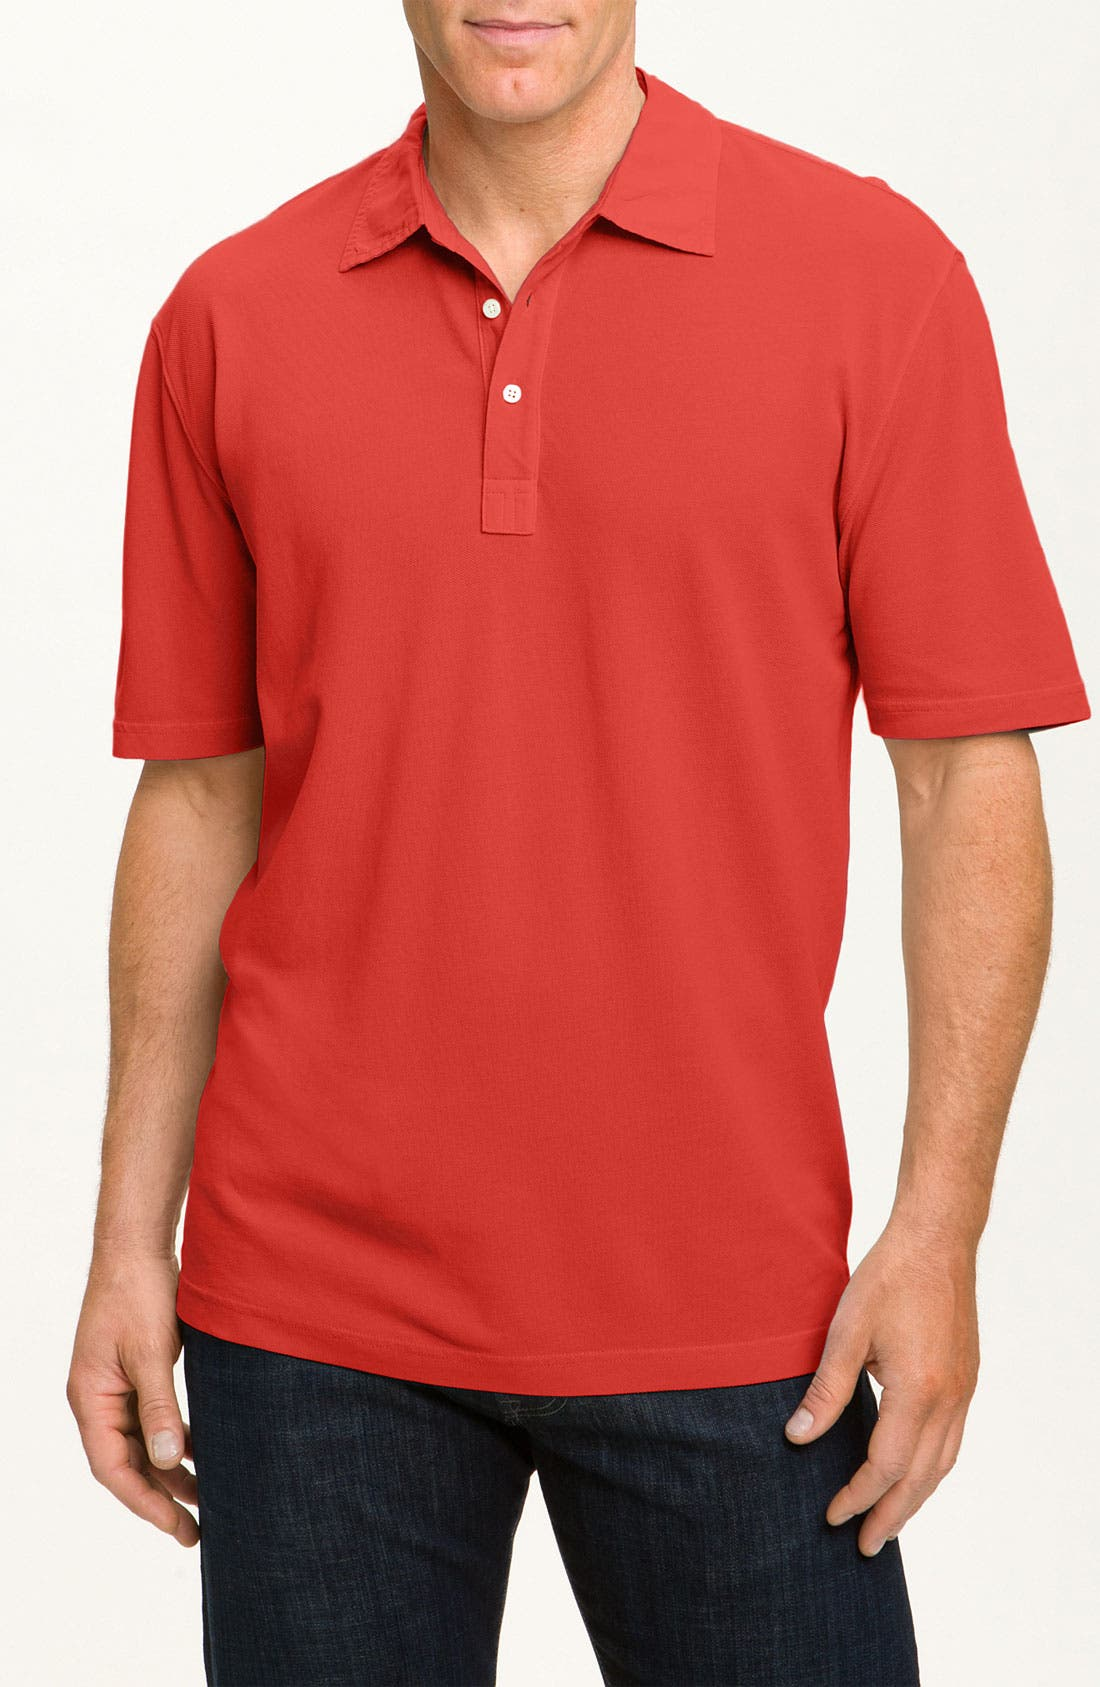 Alternate Image 1 Selected - Robert Talbott Garment Dyed Polo